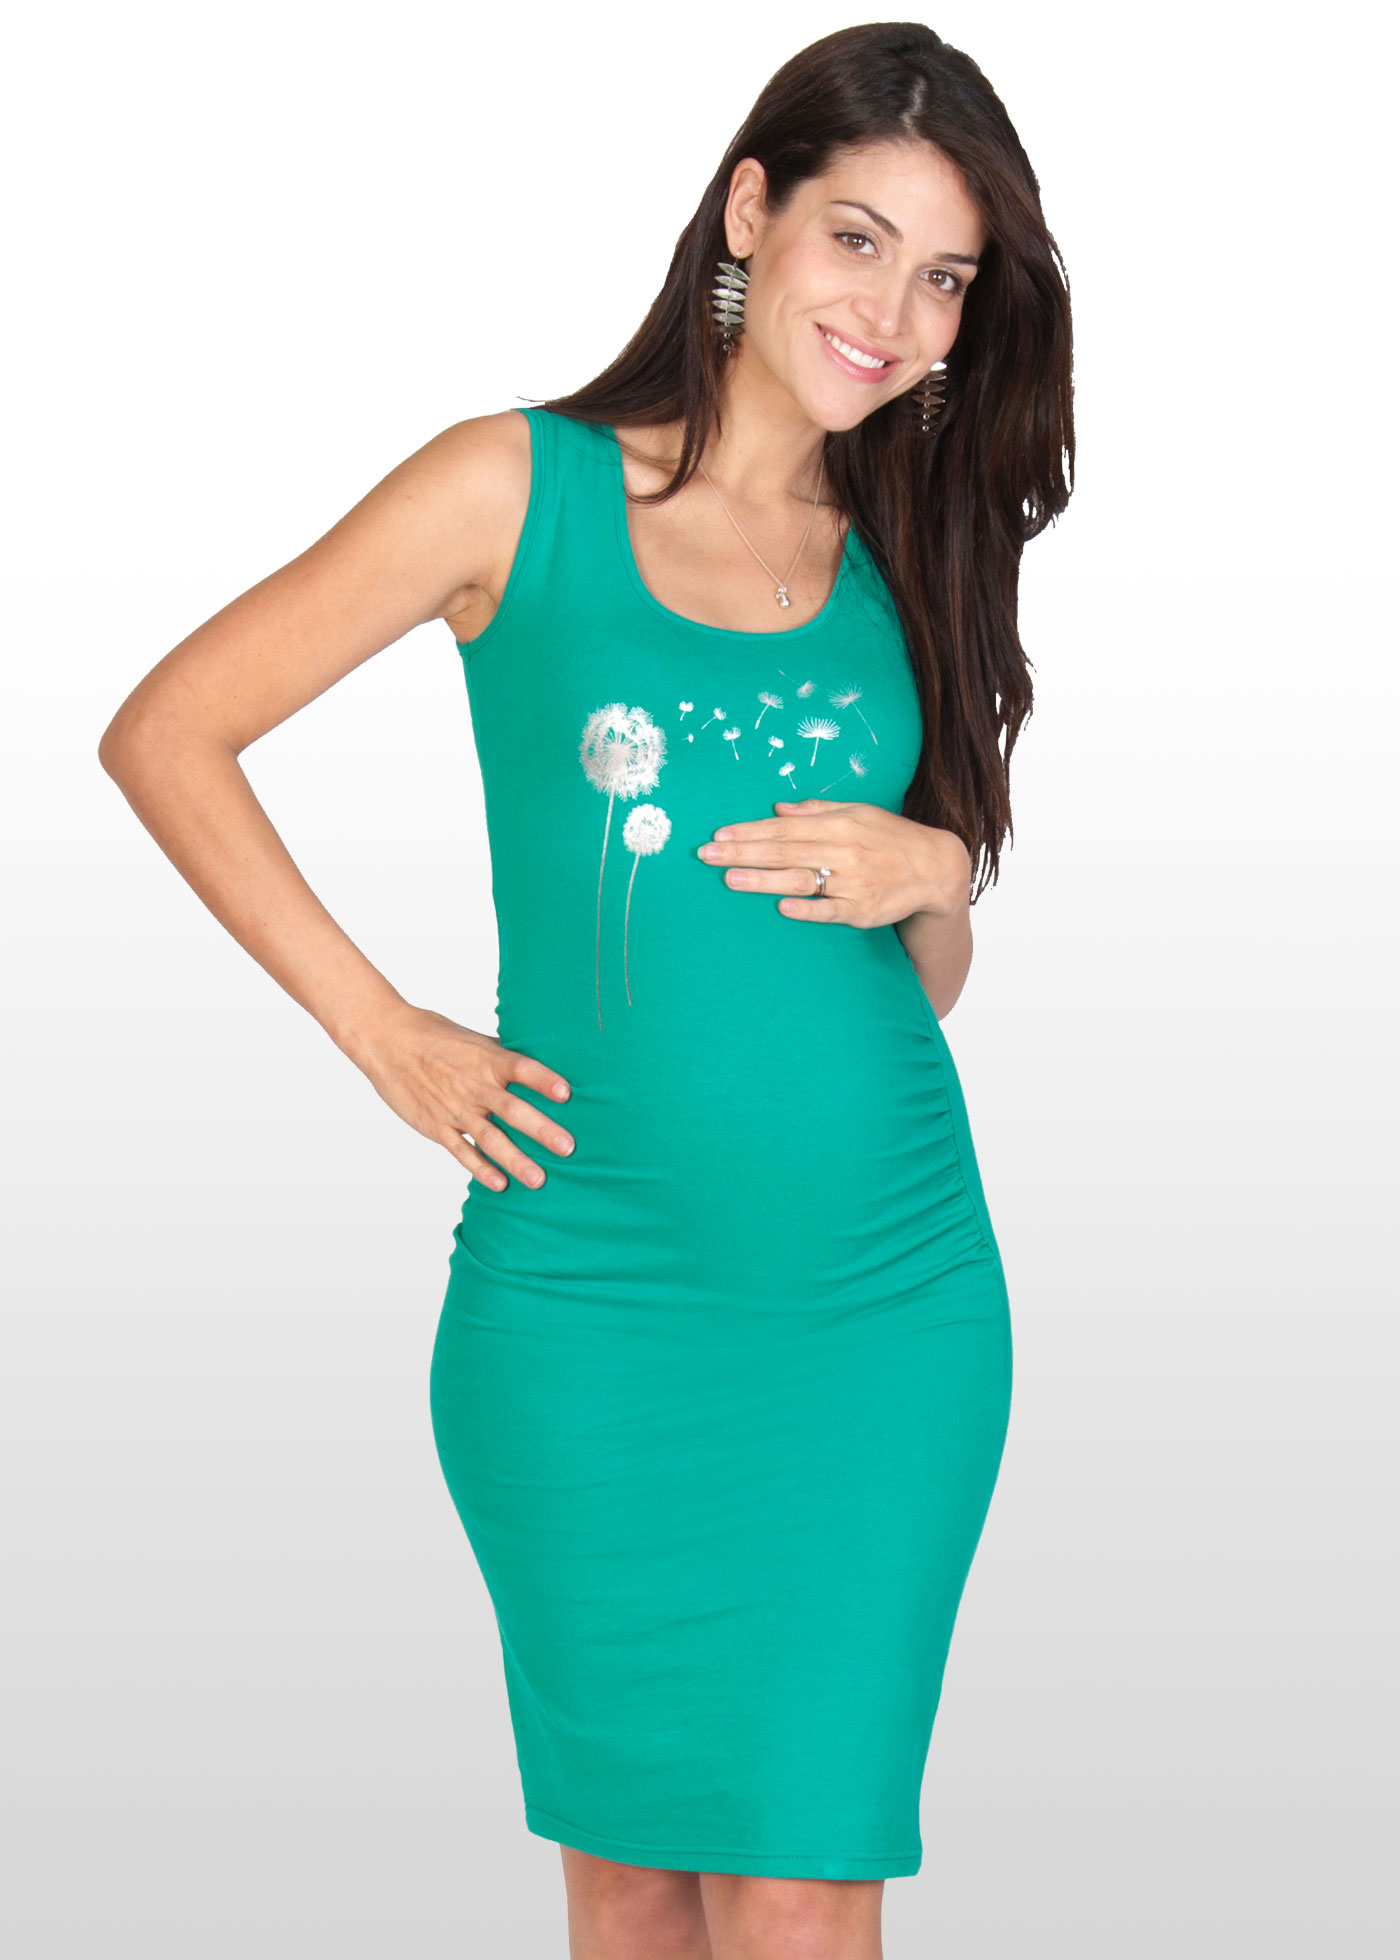 Australia's Spring / Summer Maternity Trends 2014-2015 | The ...